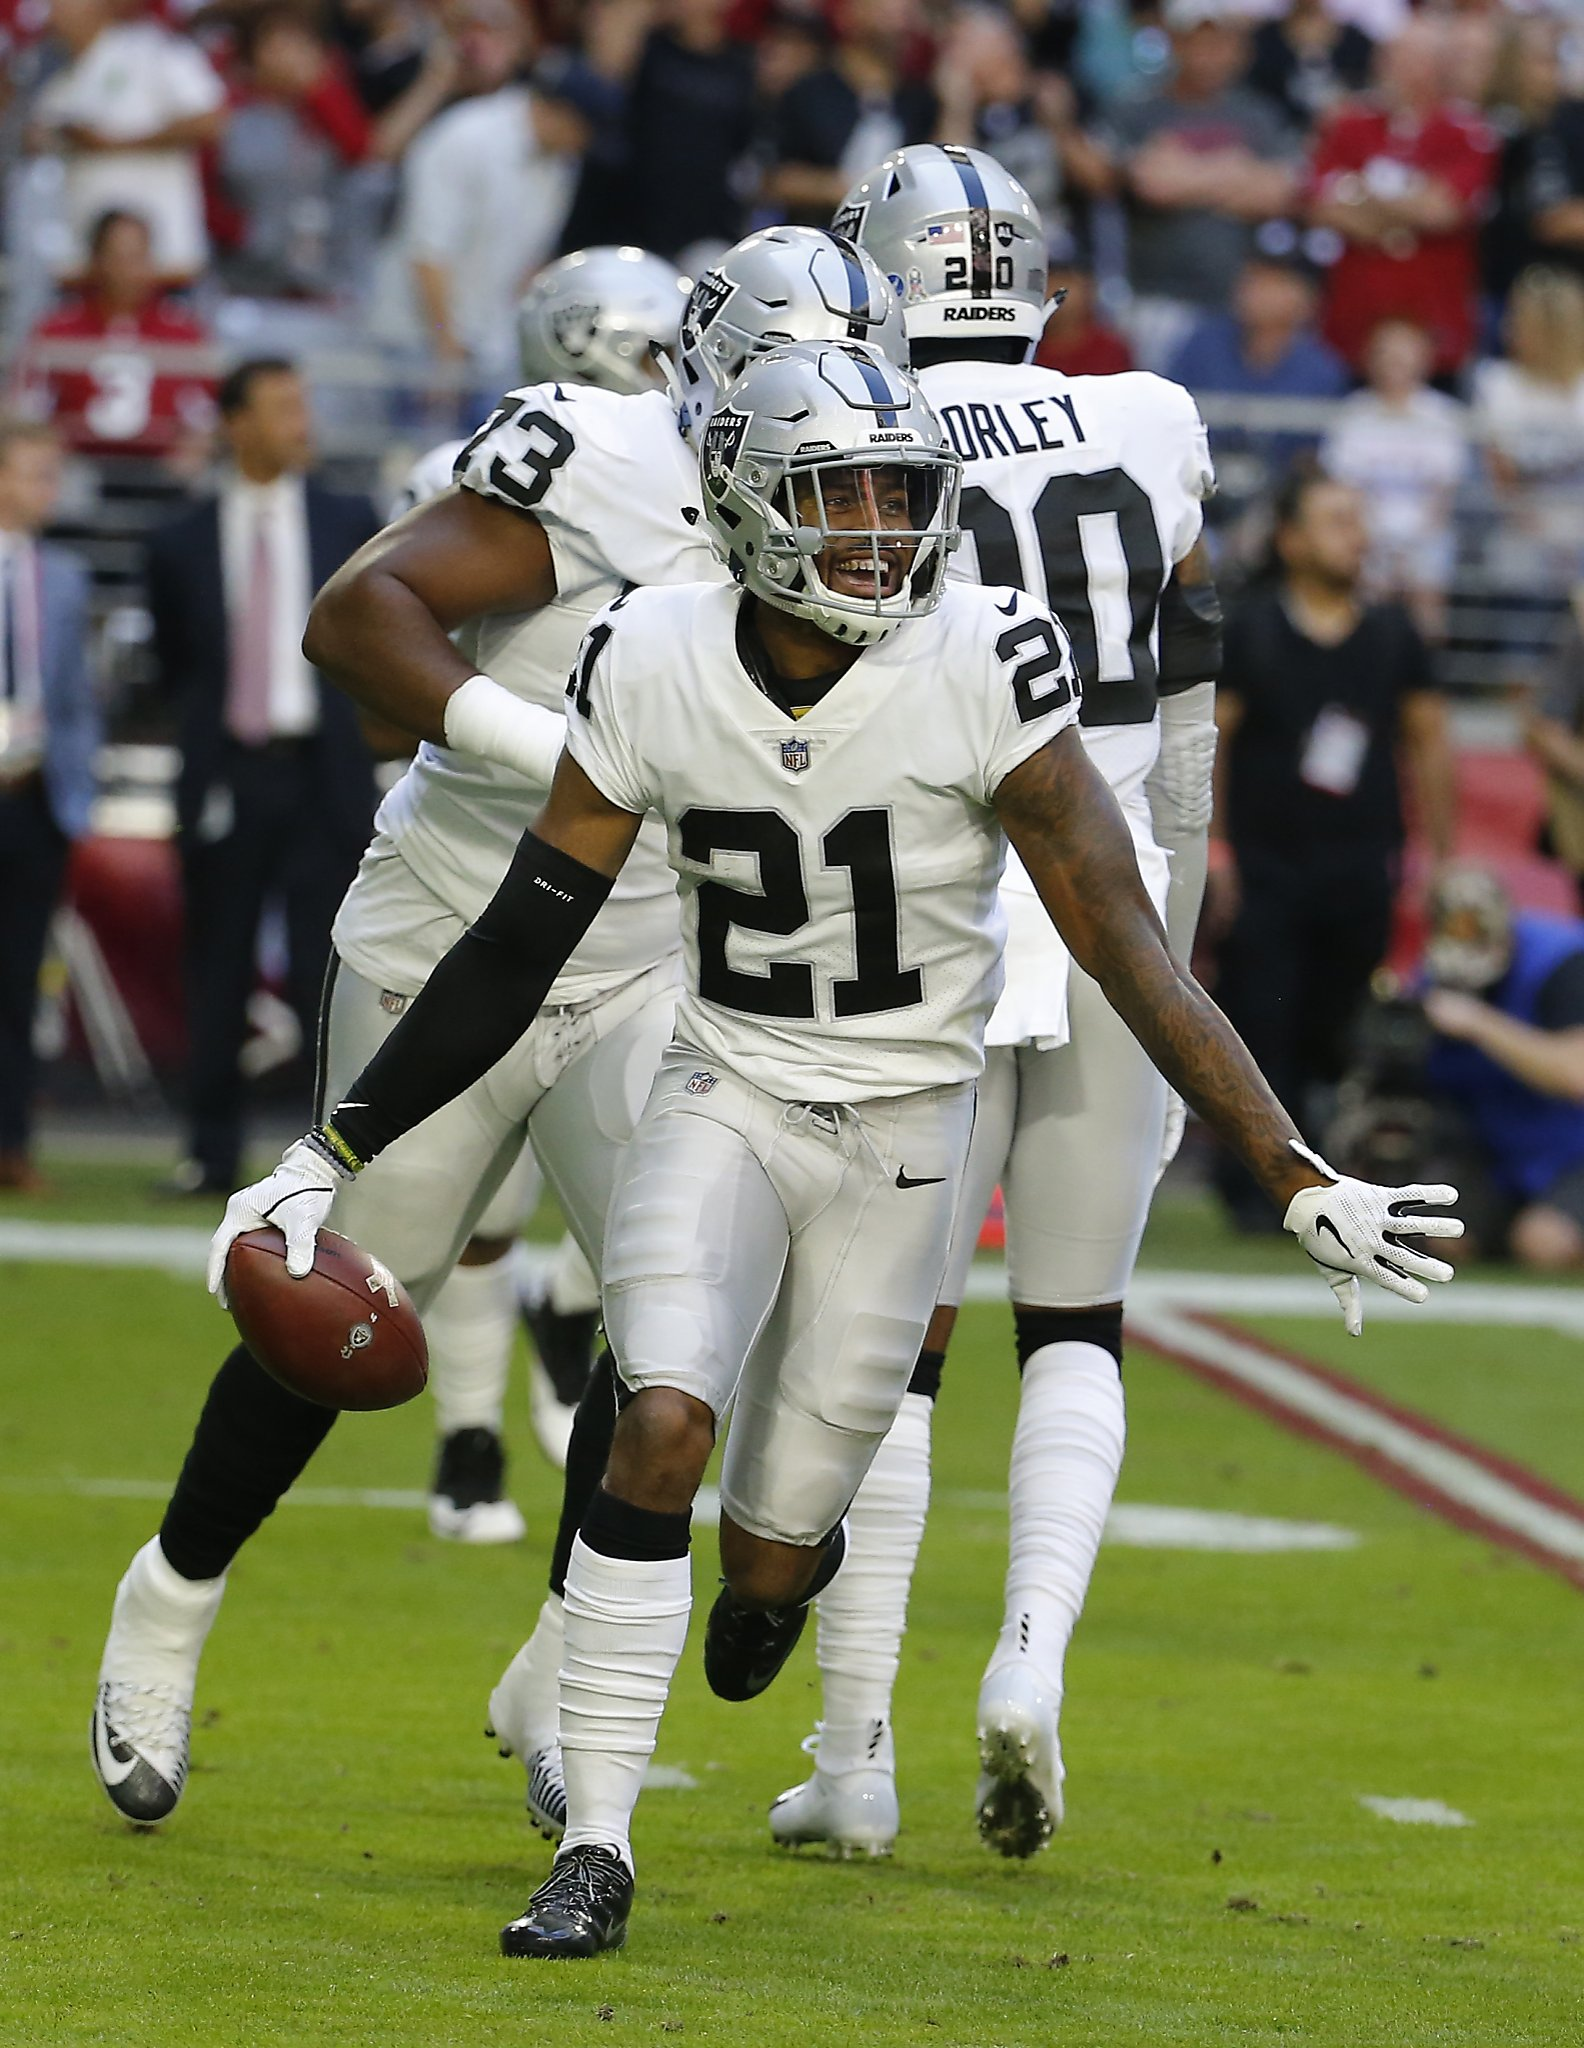 Raiders  Gareon Conley has  mission to be great  - SFChronicle.com 0a1d1eb53